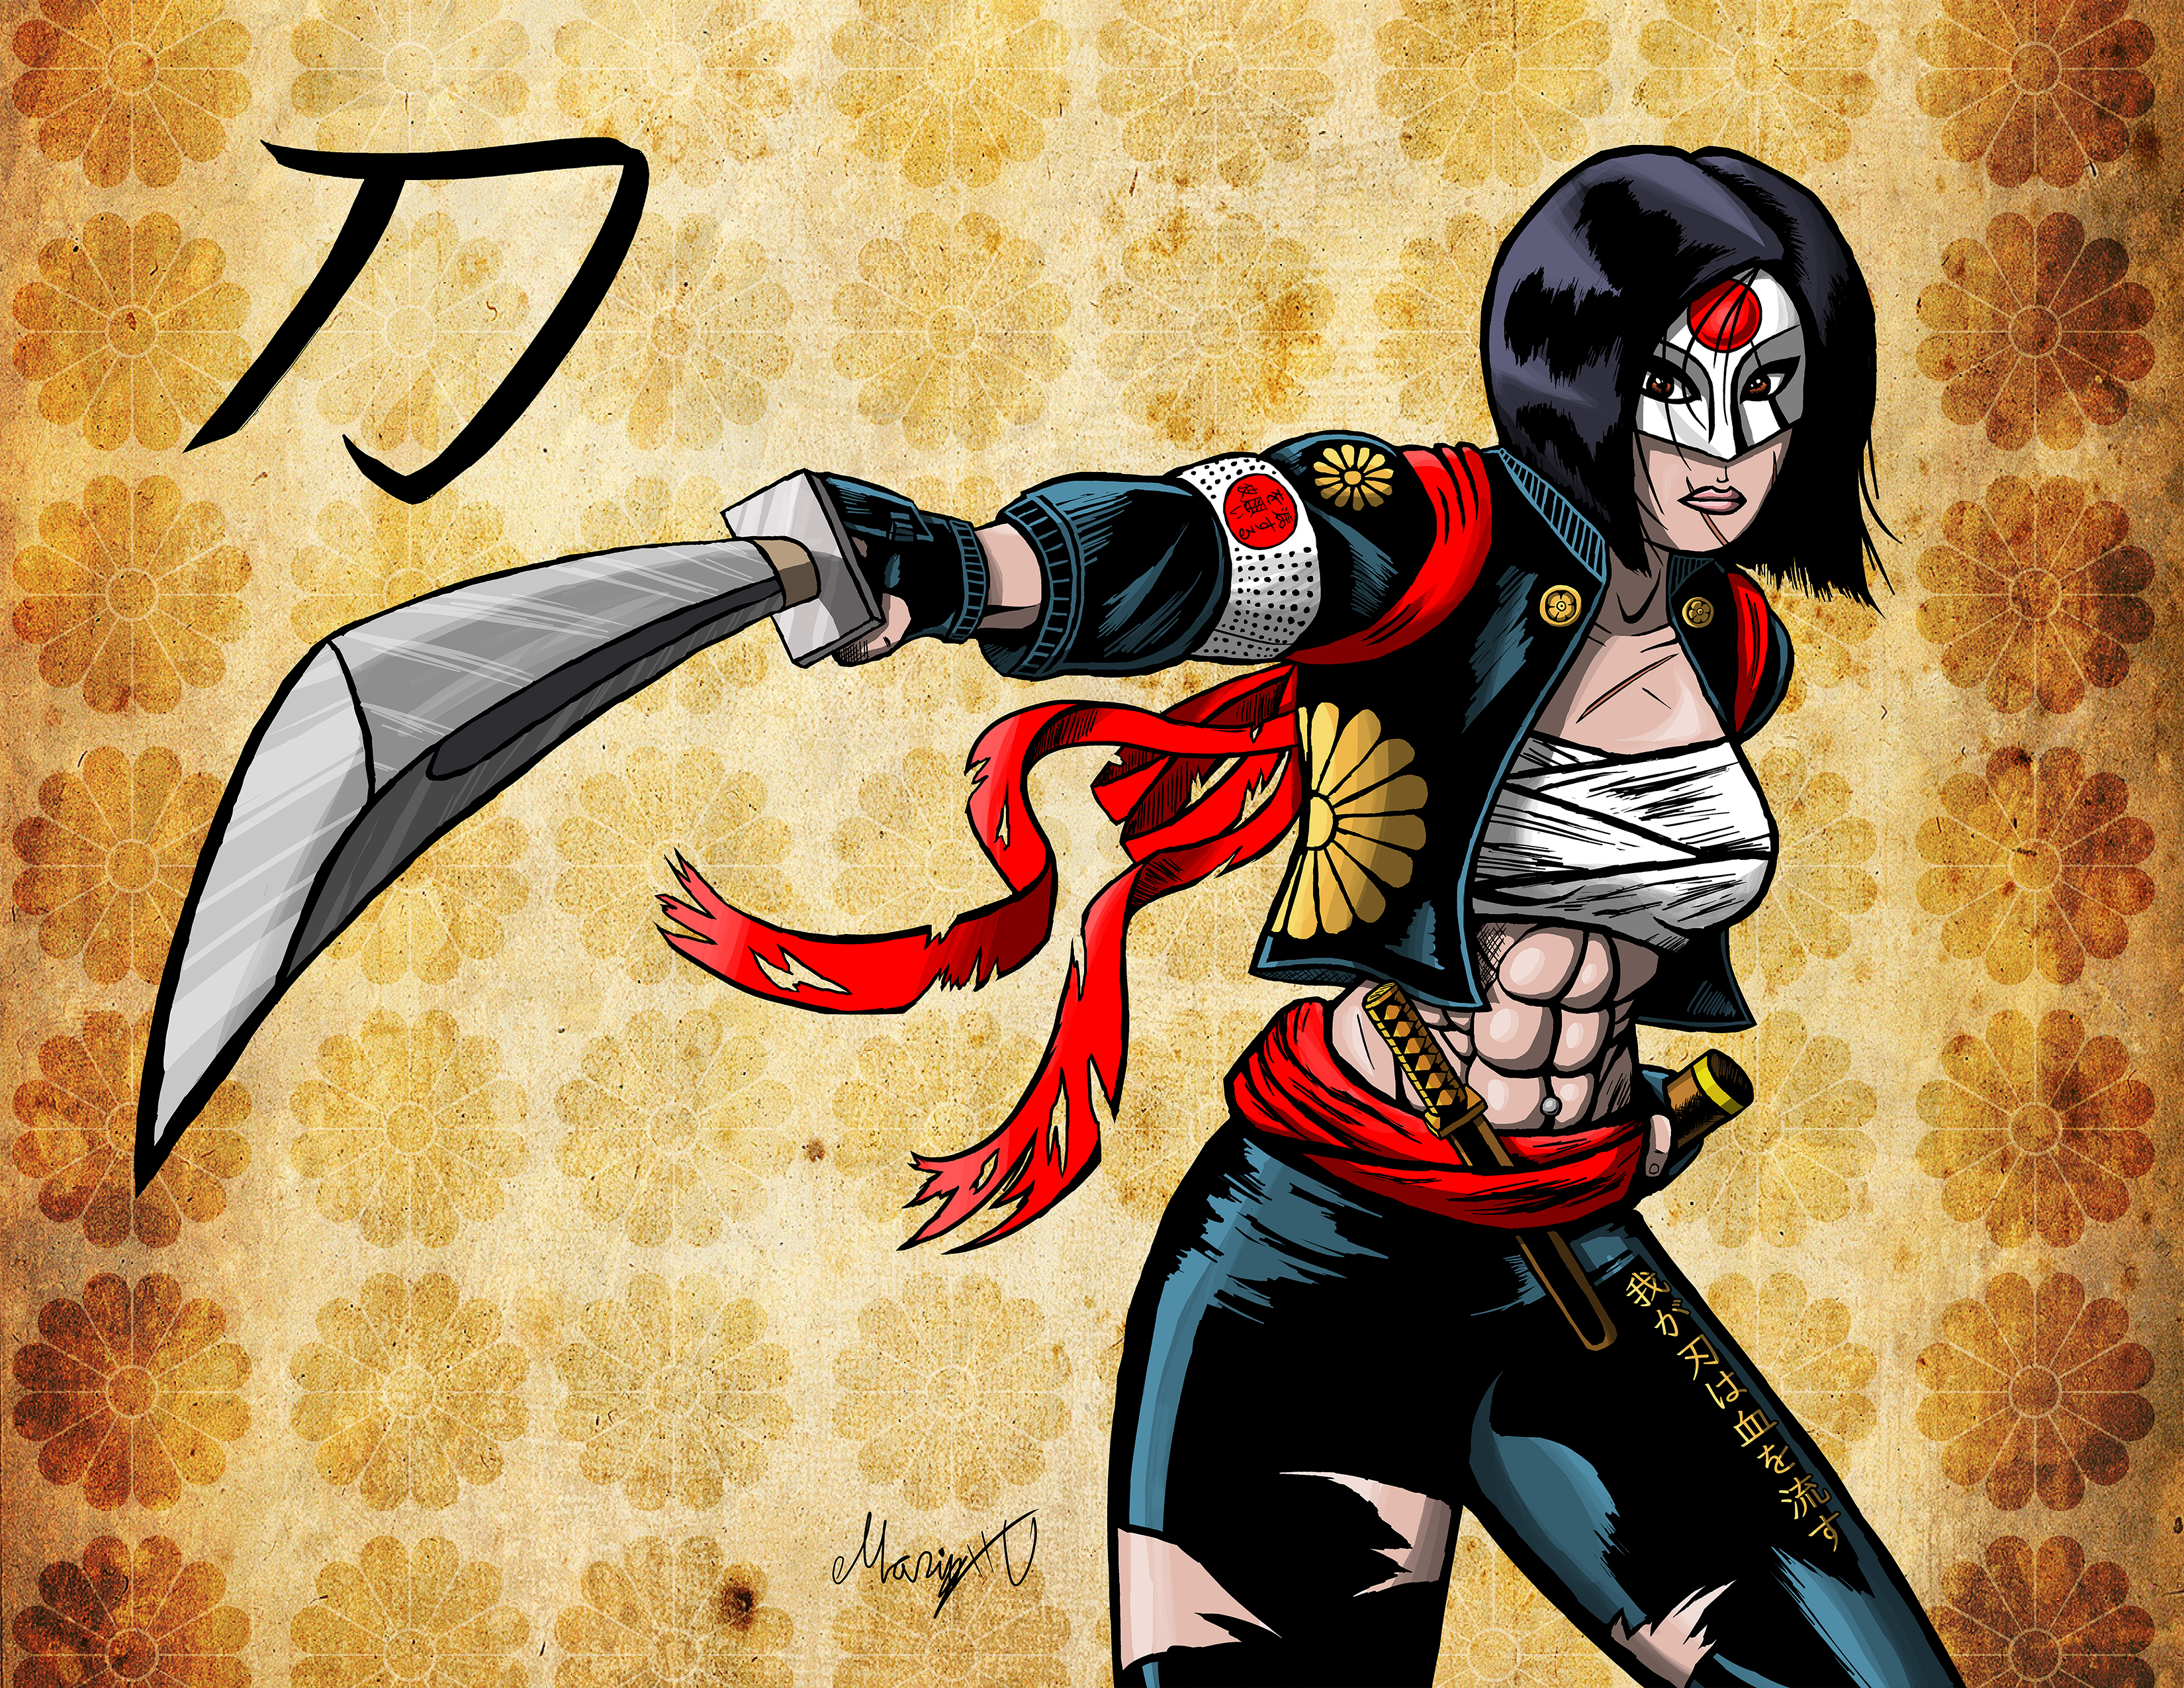 Colored version drawing of DC Comics' Katana from the Suicide Squad movie. I have a rule that all Fe